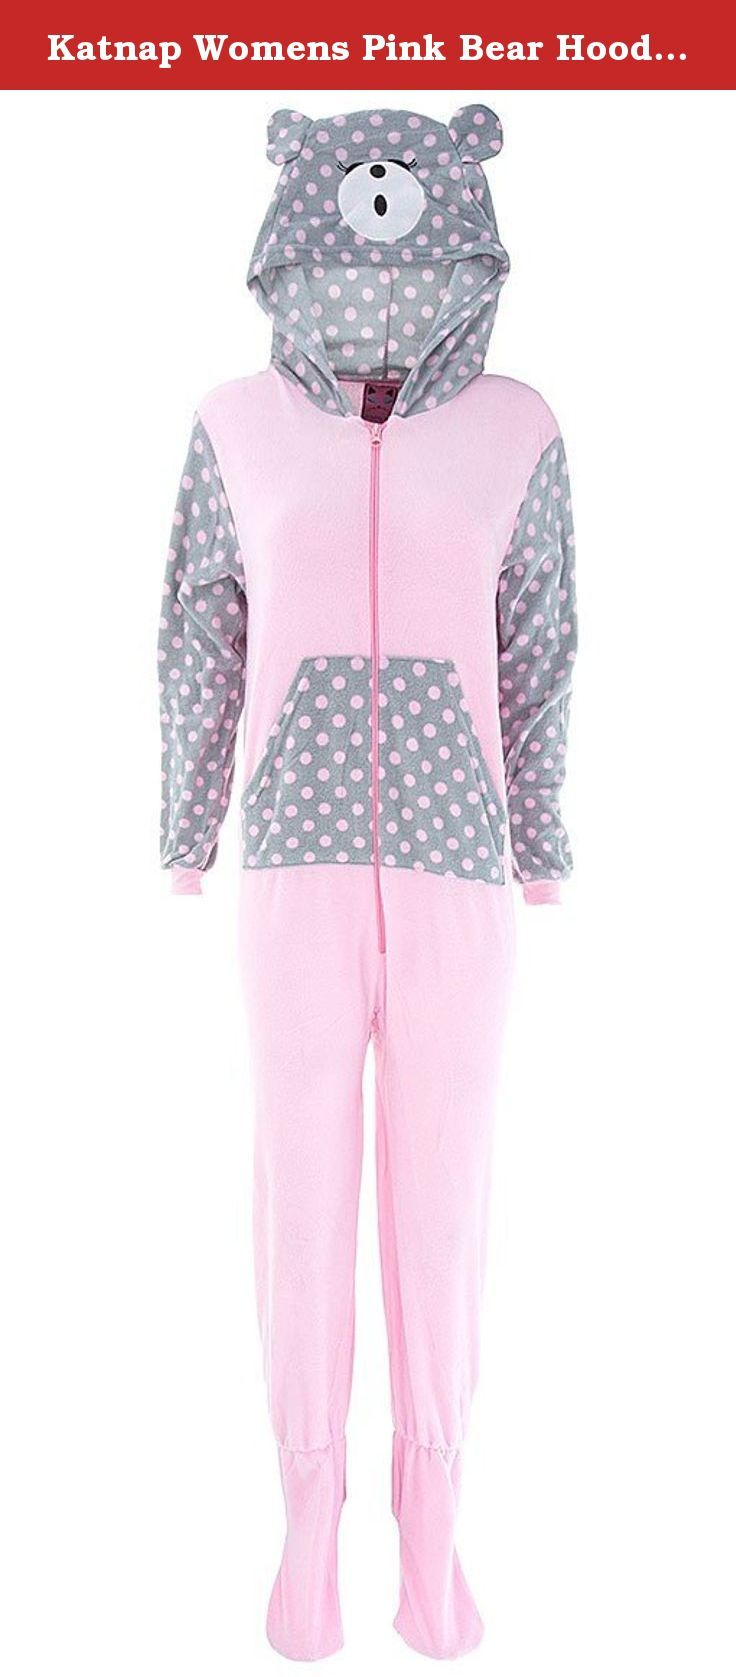 Katnap Womens Pink Bear Hooded Footed Pajamas L. These fleece, footed pajamas are made of warm micro polar fleece. They feature a fun, animal print. The brand is Katnap. They zip up the front. The soles of the feet have a non-skid finish.